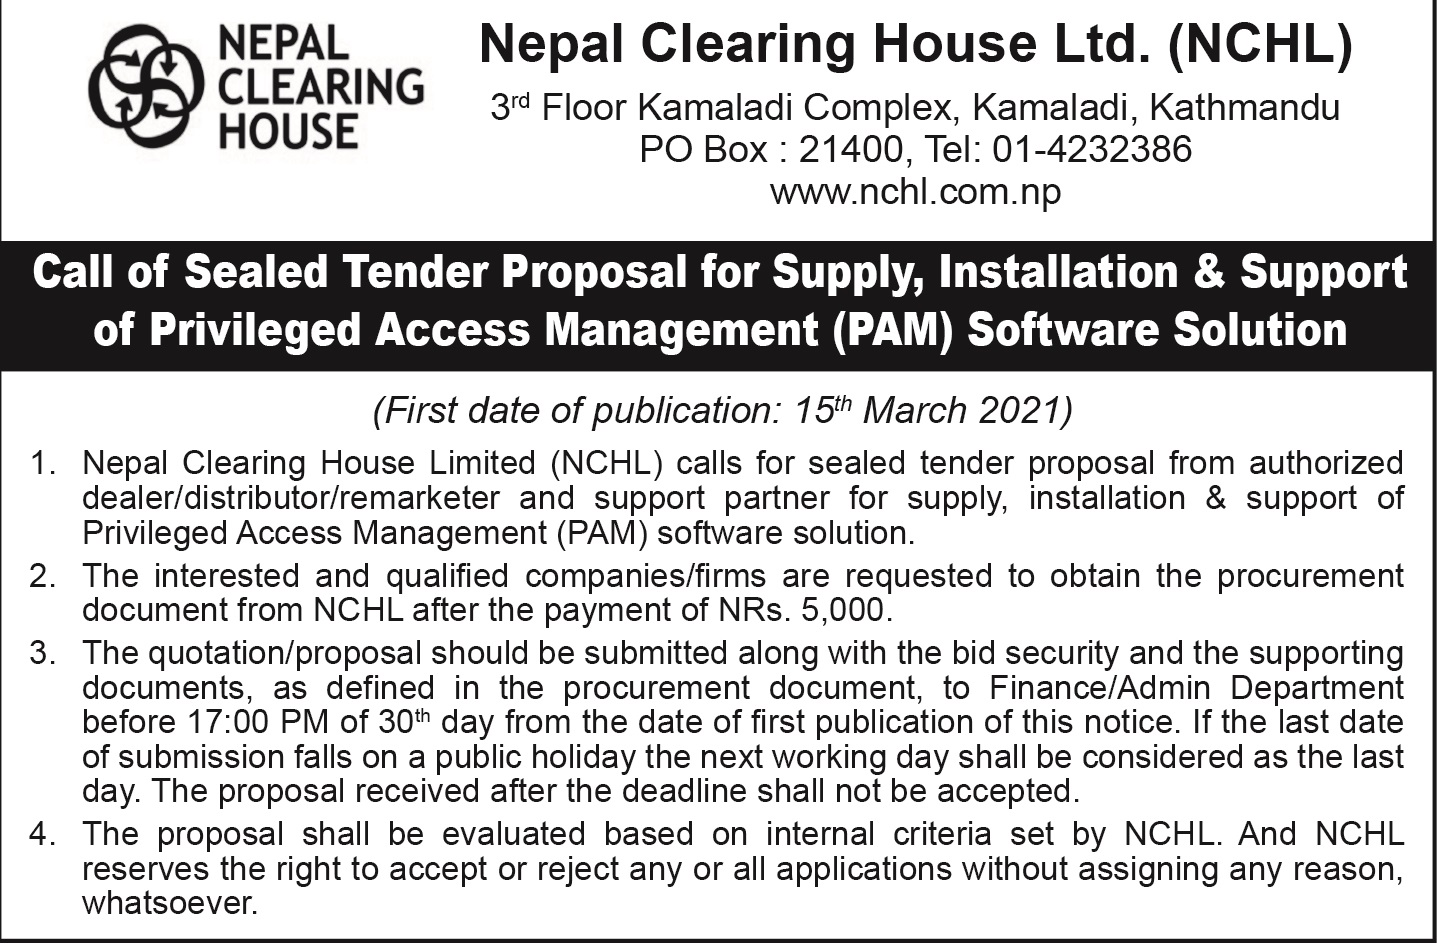 Call of Sealed Tender Proposal for Supply, Installation & Support of Privileged Access Management (PAM) Software Solution